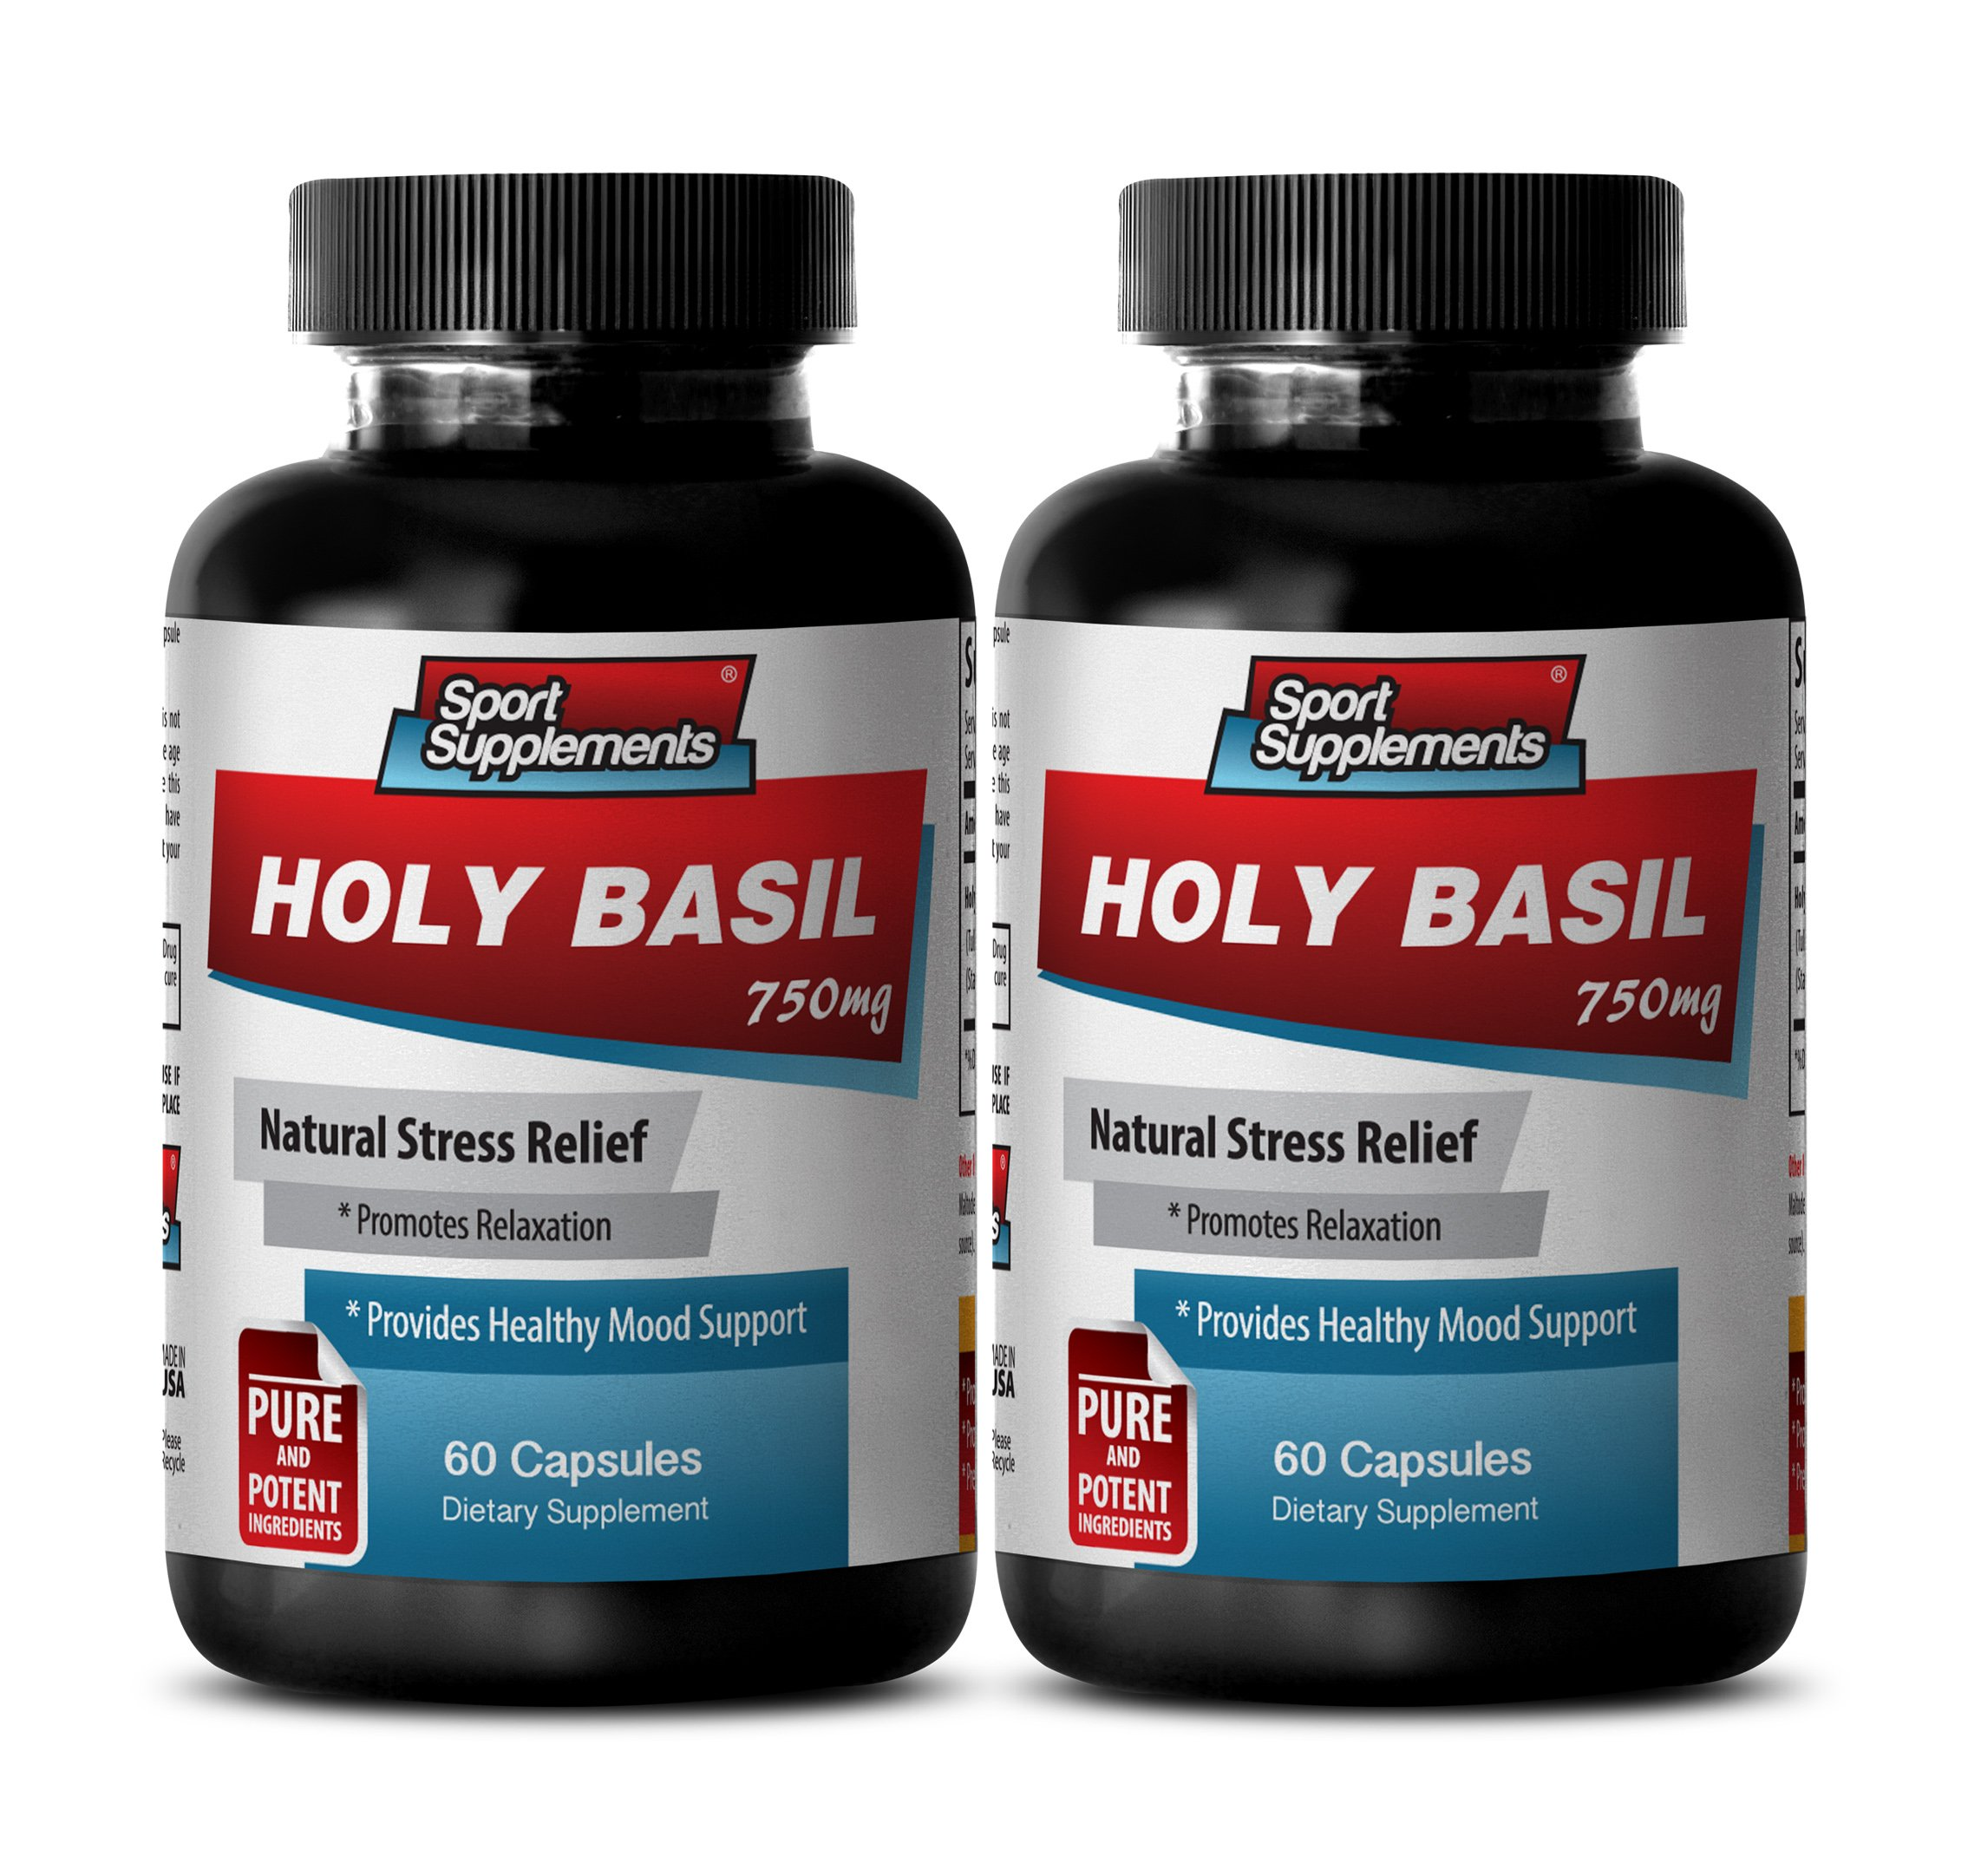 Antioxidant and immunity - HOLY BASIL EXTRACT 750Mg For Natural Stress Relief - Holy basil force new chapter - 2 Bottles 120 Capsules